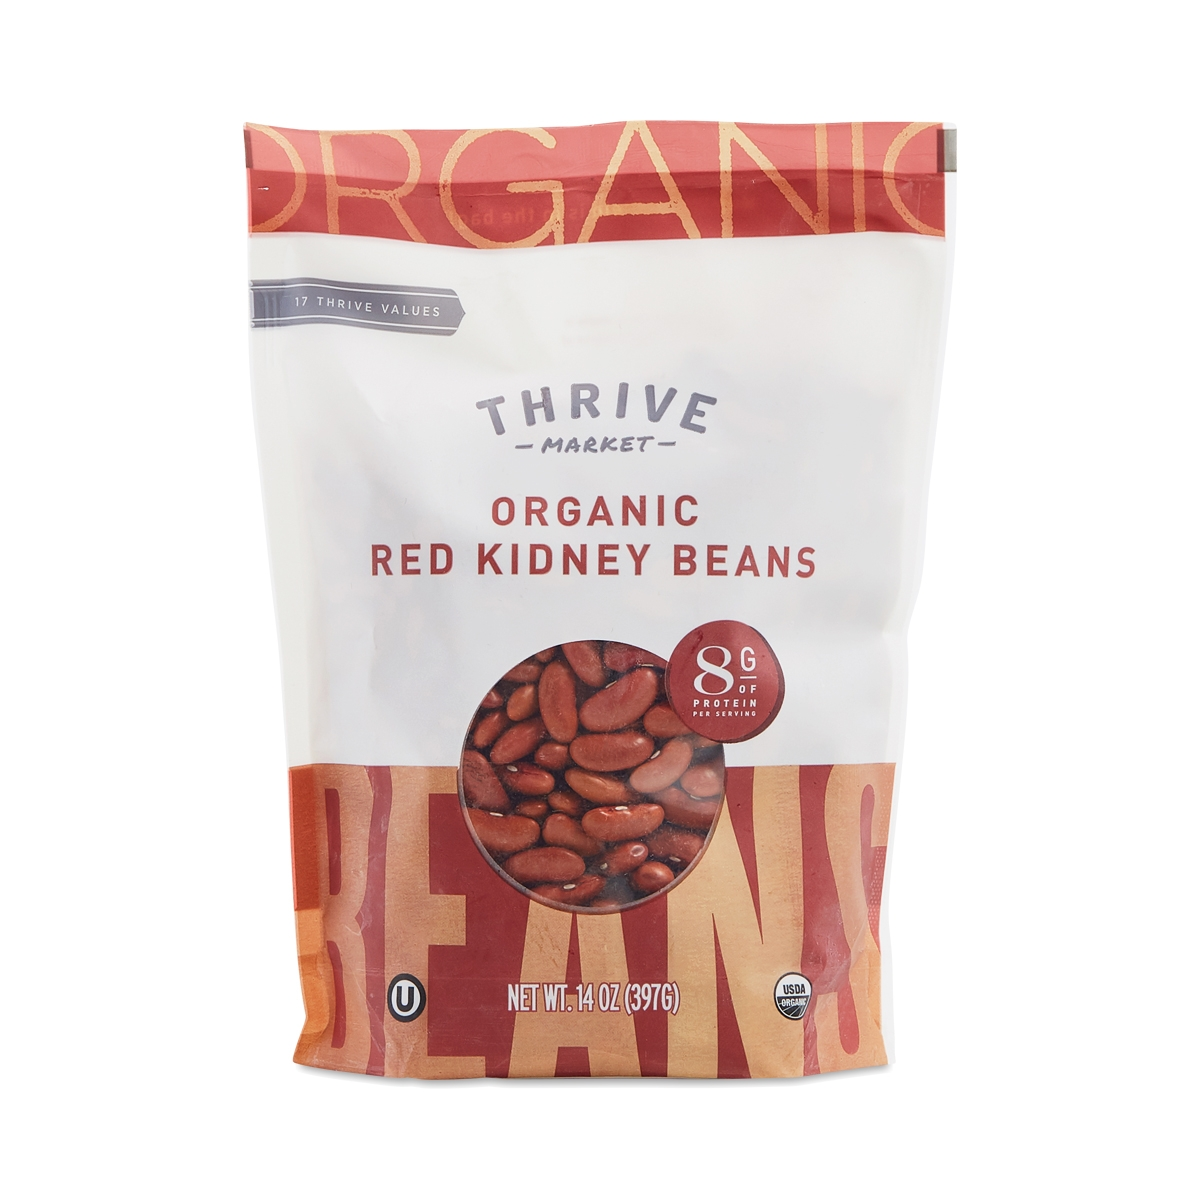 Organic Dried Red Kidney Beans Thrive Market 3976 Fuel Filter